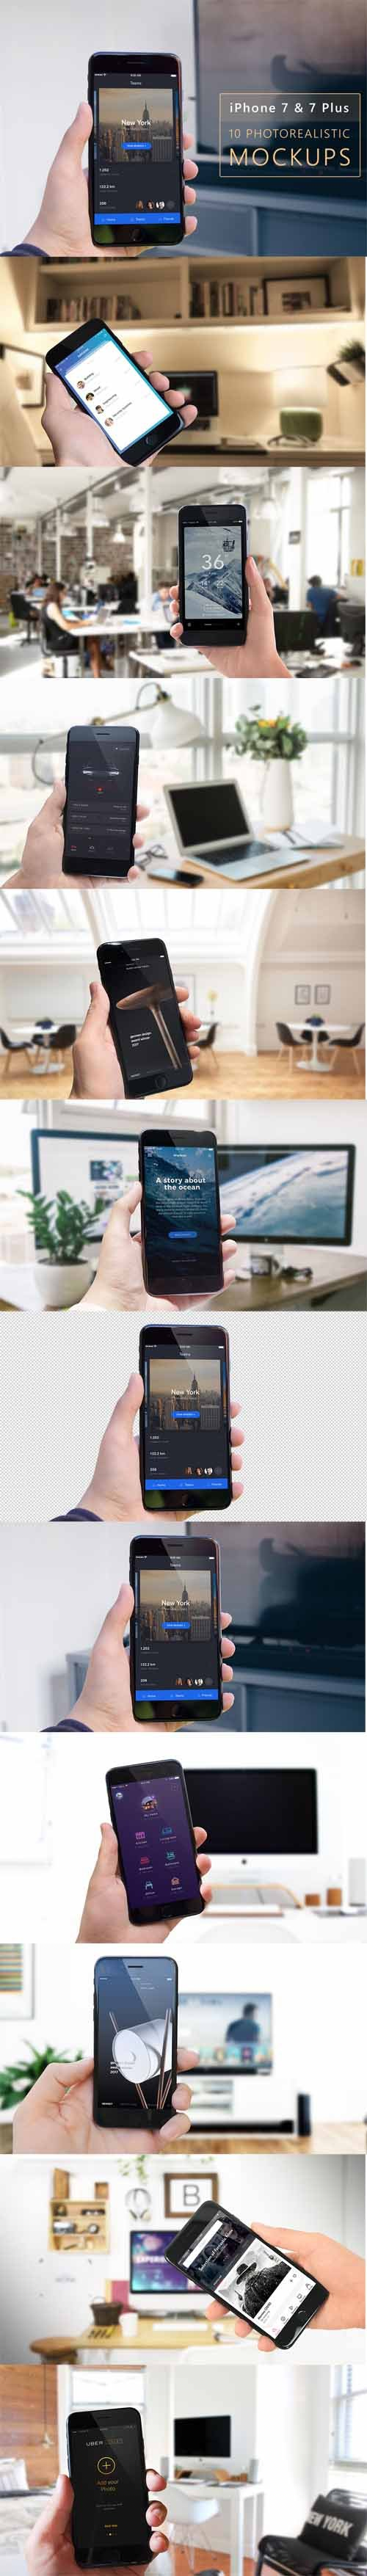 Photo Realistic IPhone 7 & 7 Plus Mock-Up v2